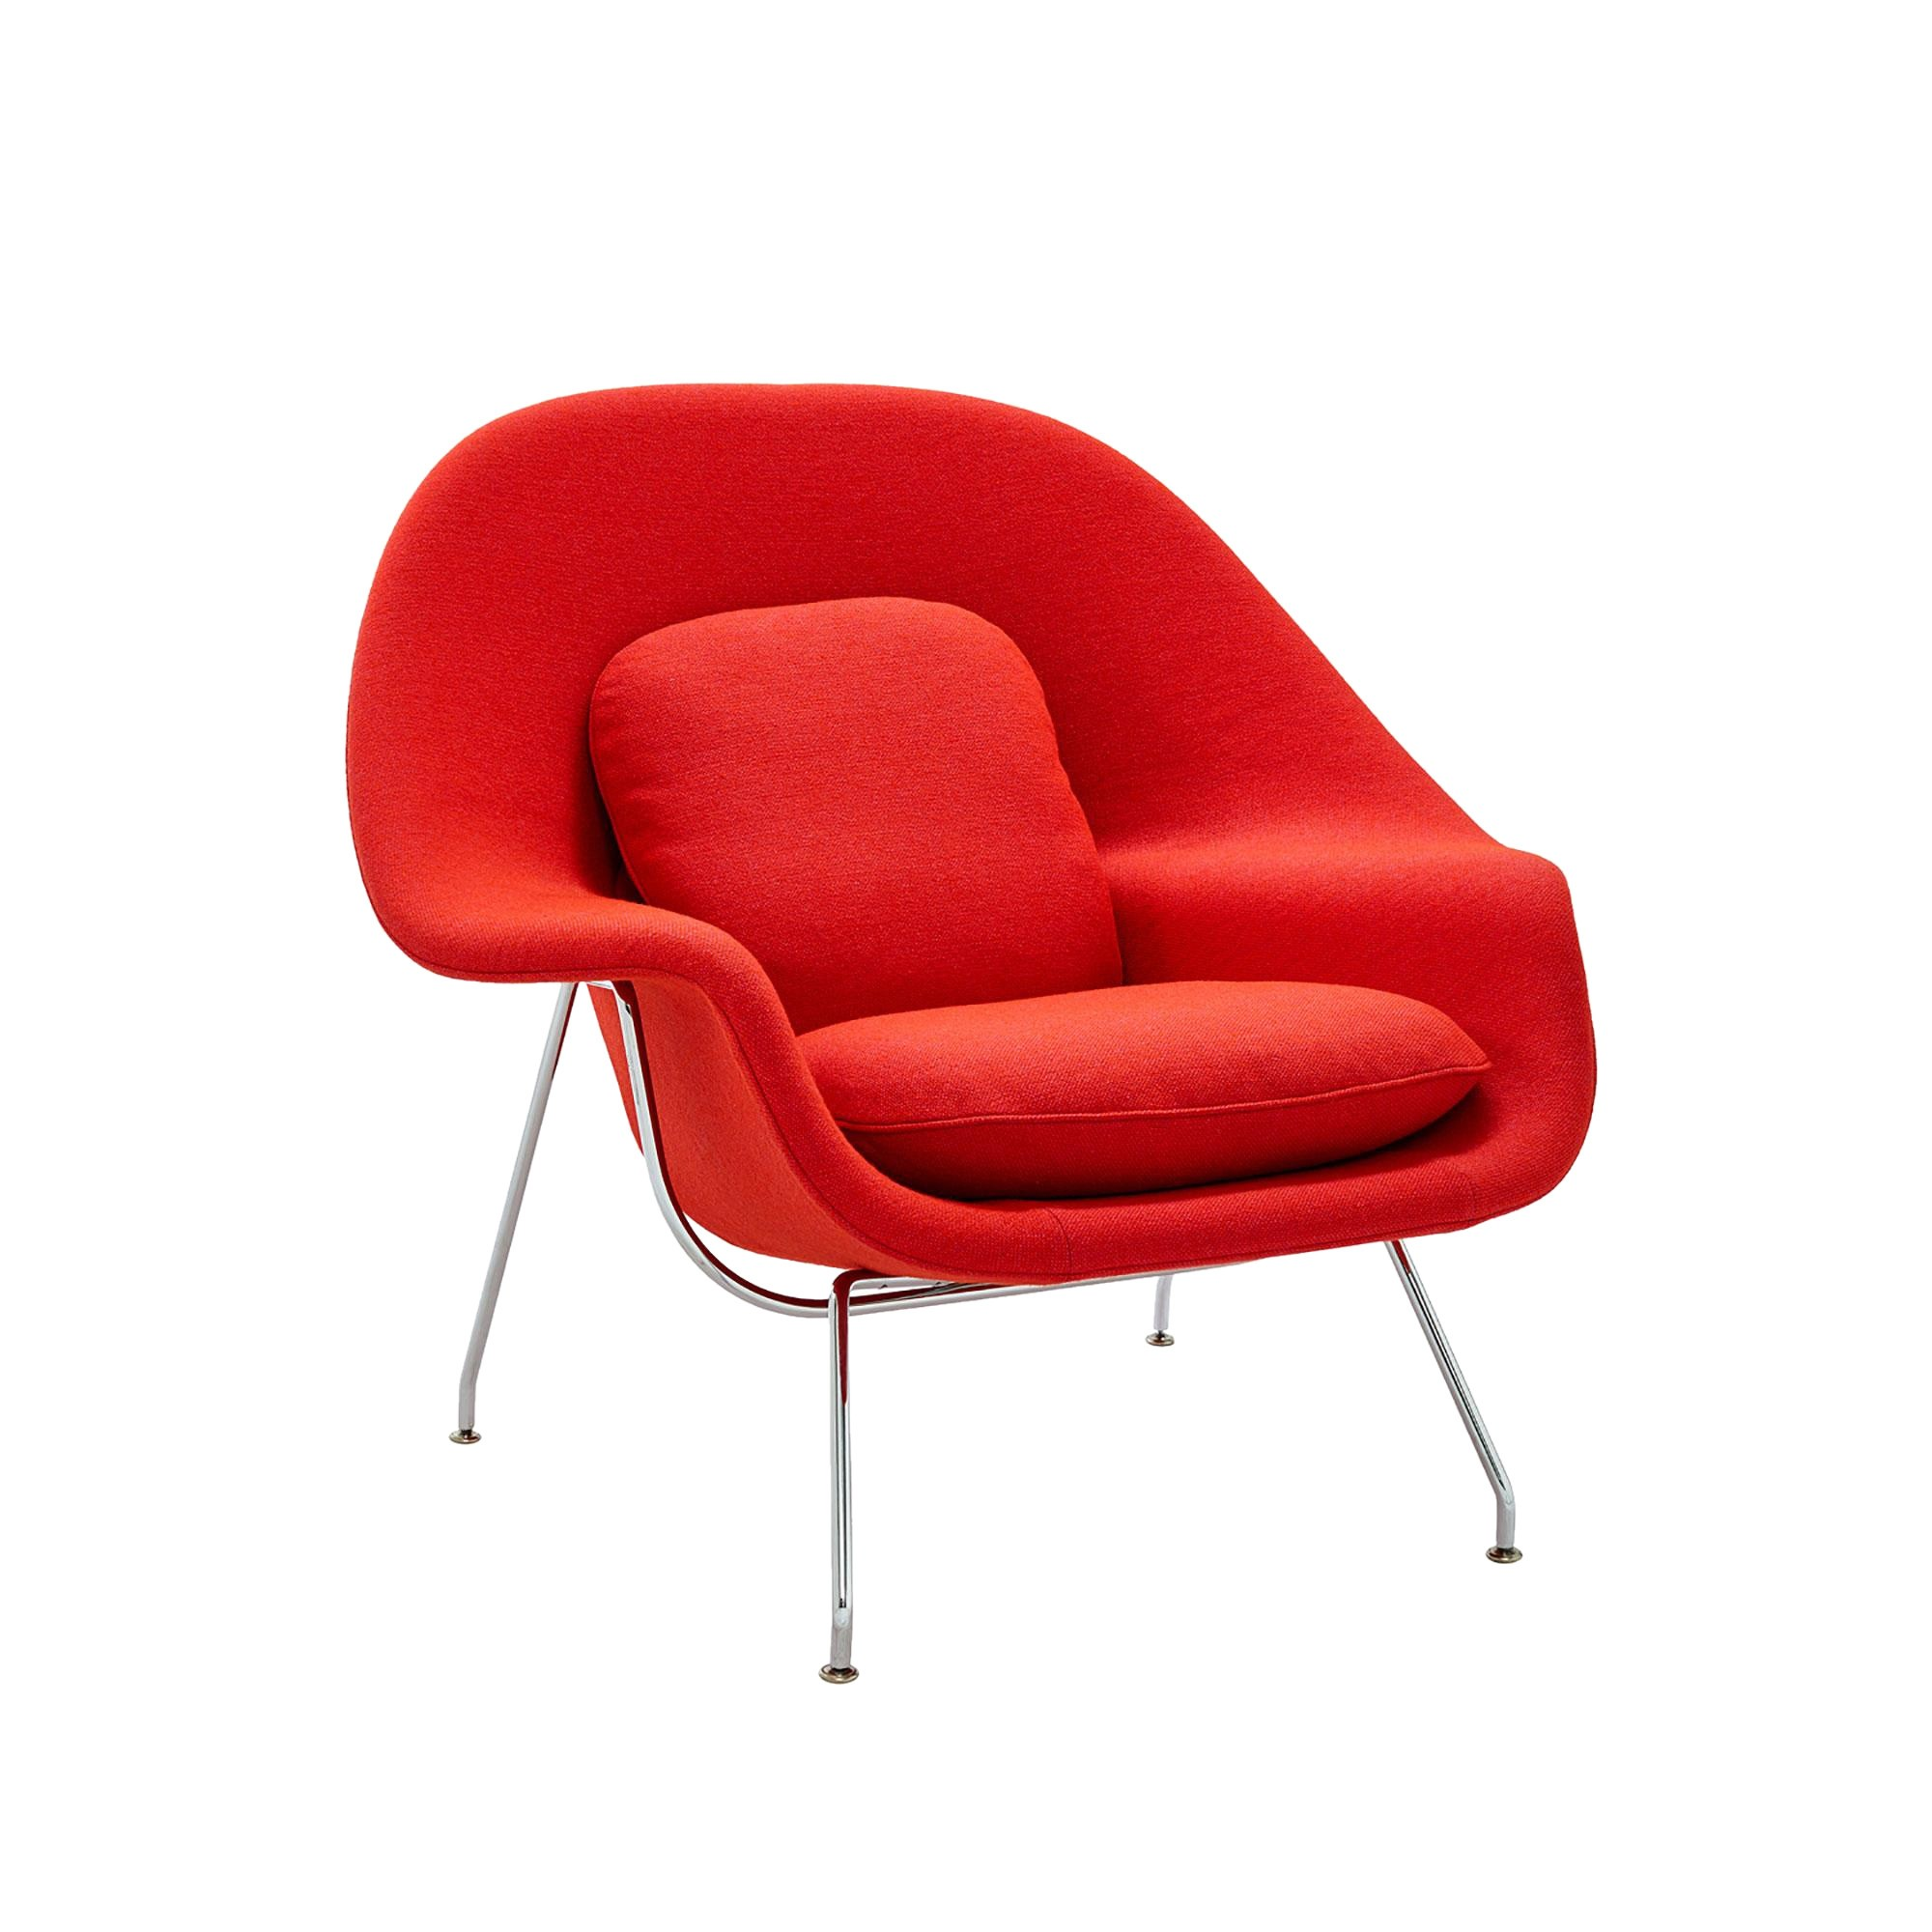 Knoll Sessel Gebraucht Womb Chair Relax Sessel Gestell Chrom